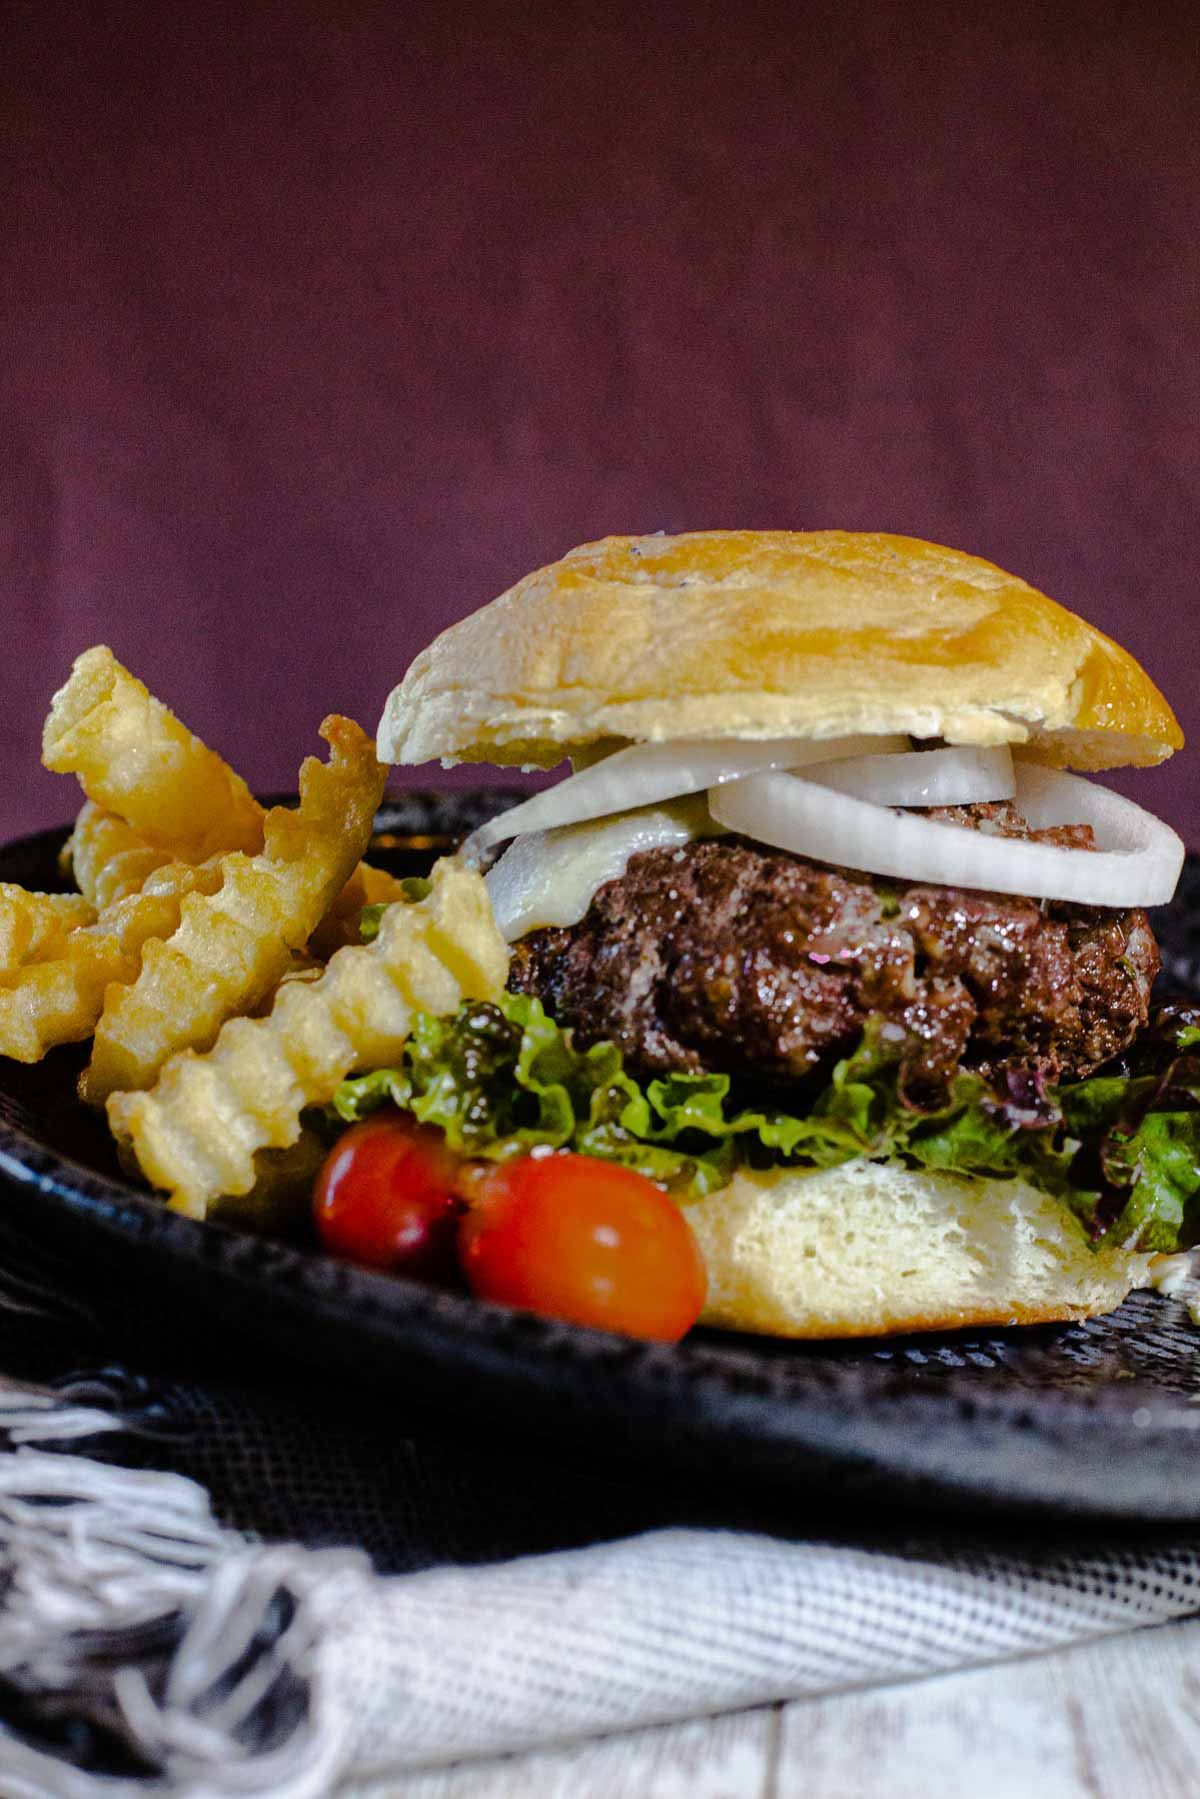 Blue cheese burger recipe topped with rings of onion and tomato with crinkle fries.